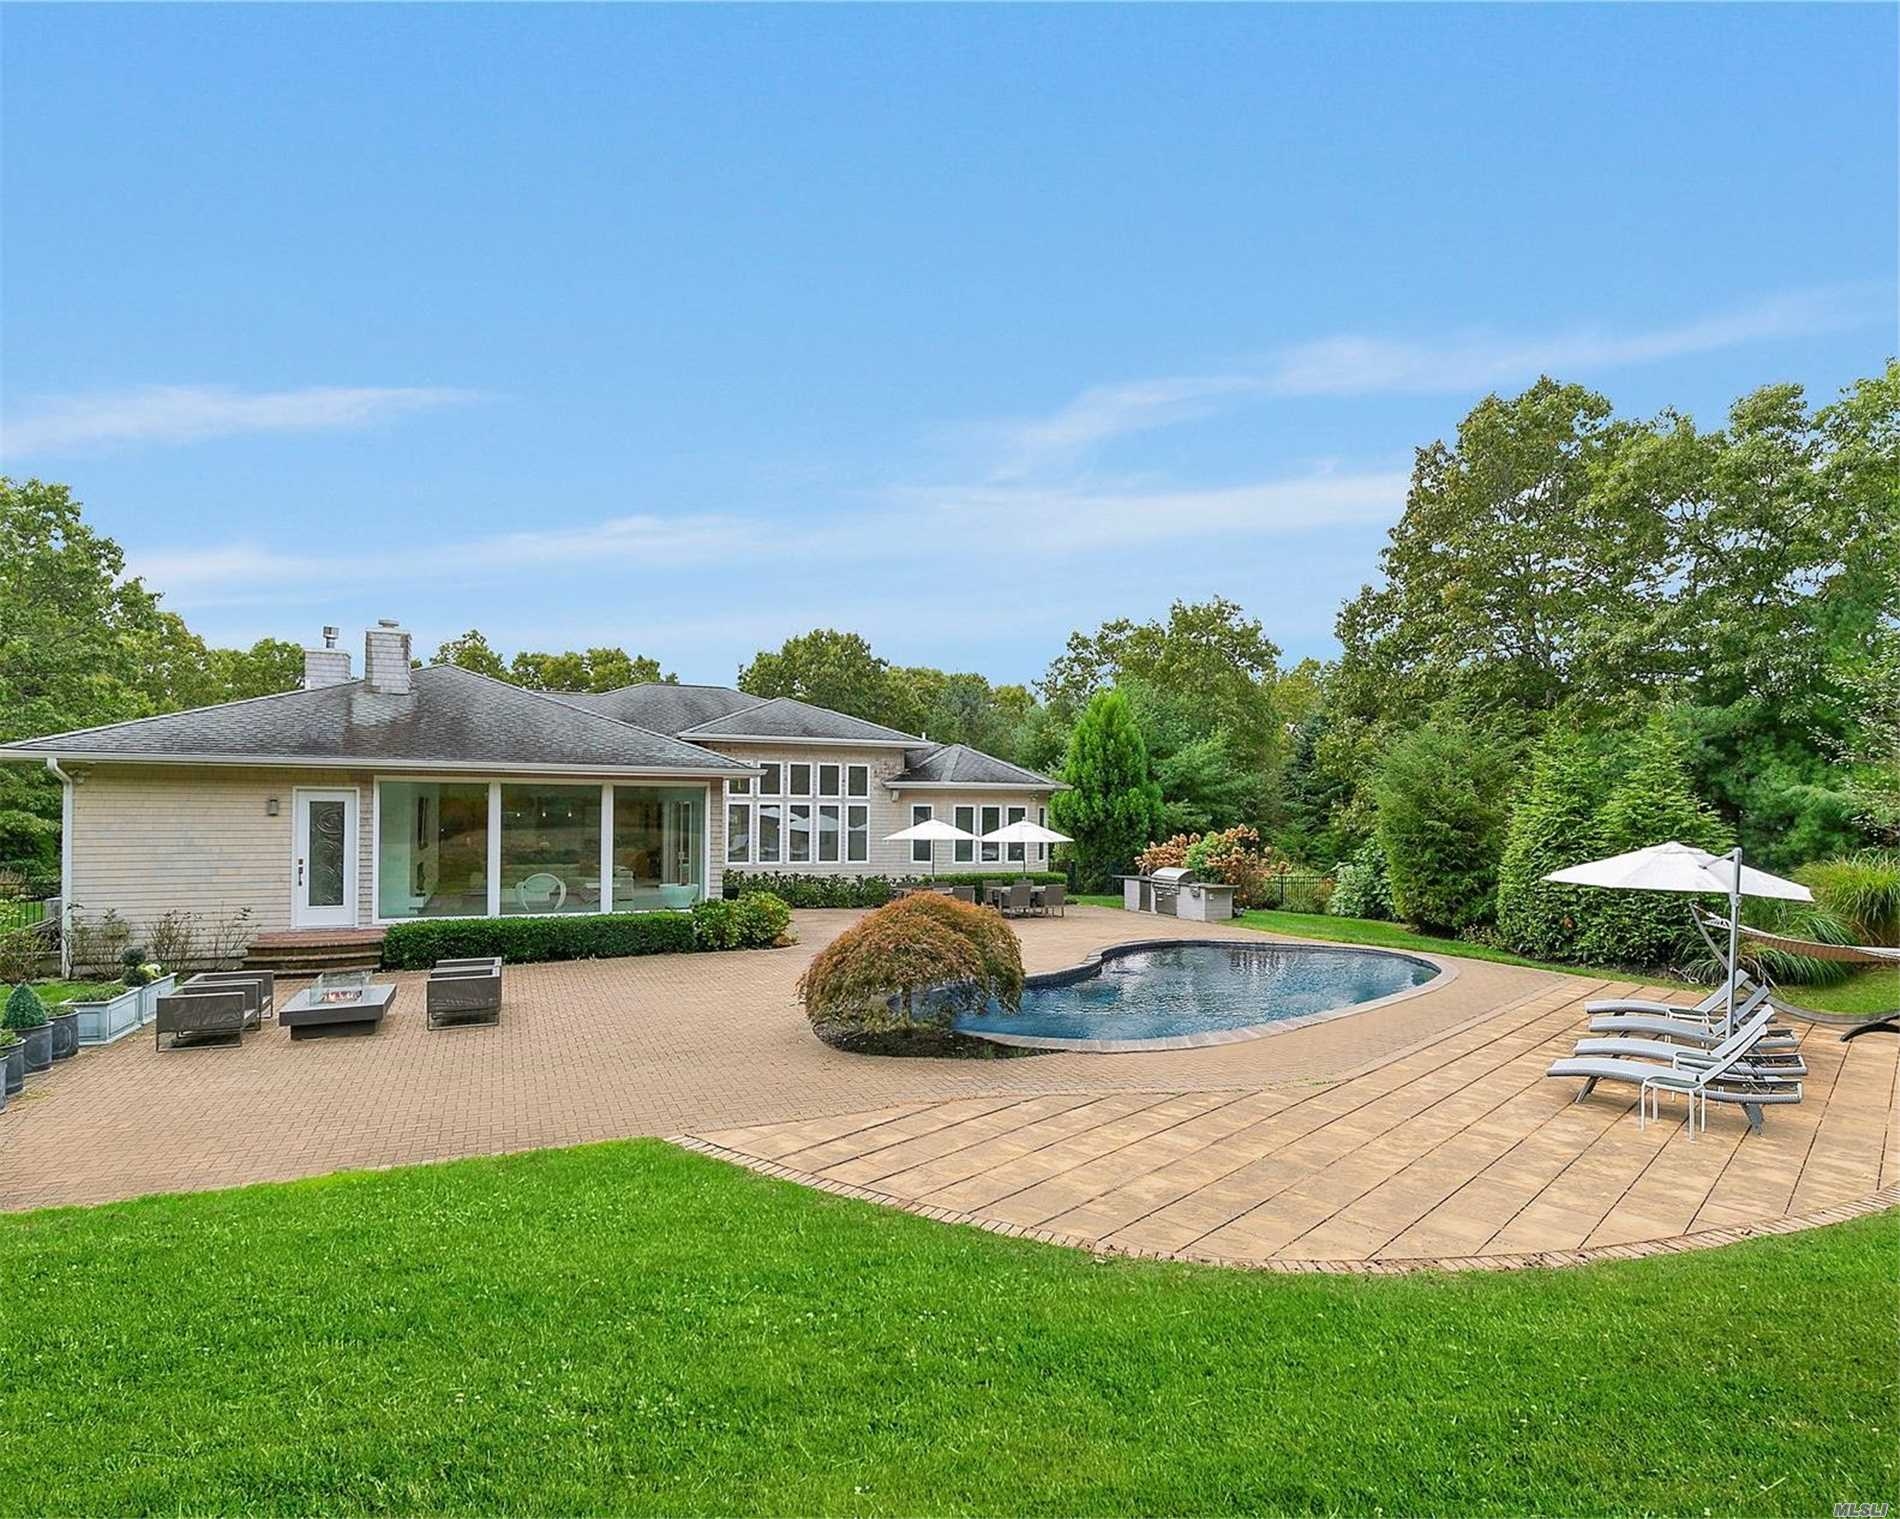 162 Chardonnay Dr, E. Quogue, New York 11942, 4 Bedrooms Bedrooms, ,3 BathroomsBathrooms,Residential,For Rent,Chardonnay,3211352